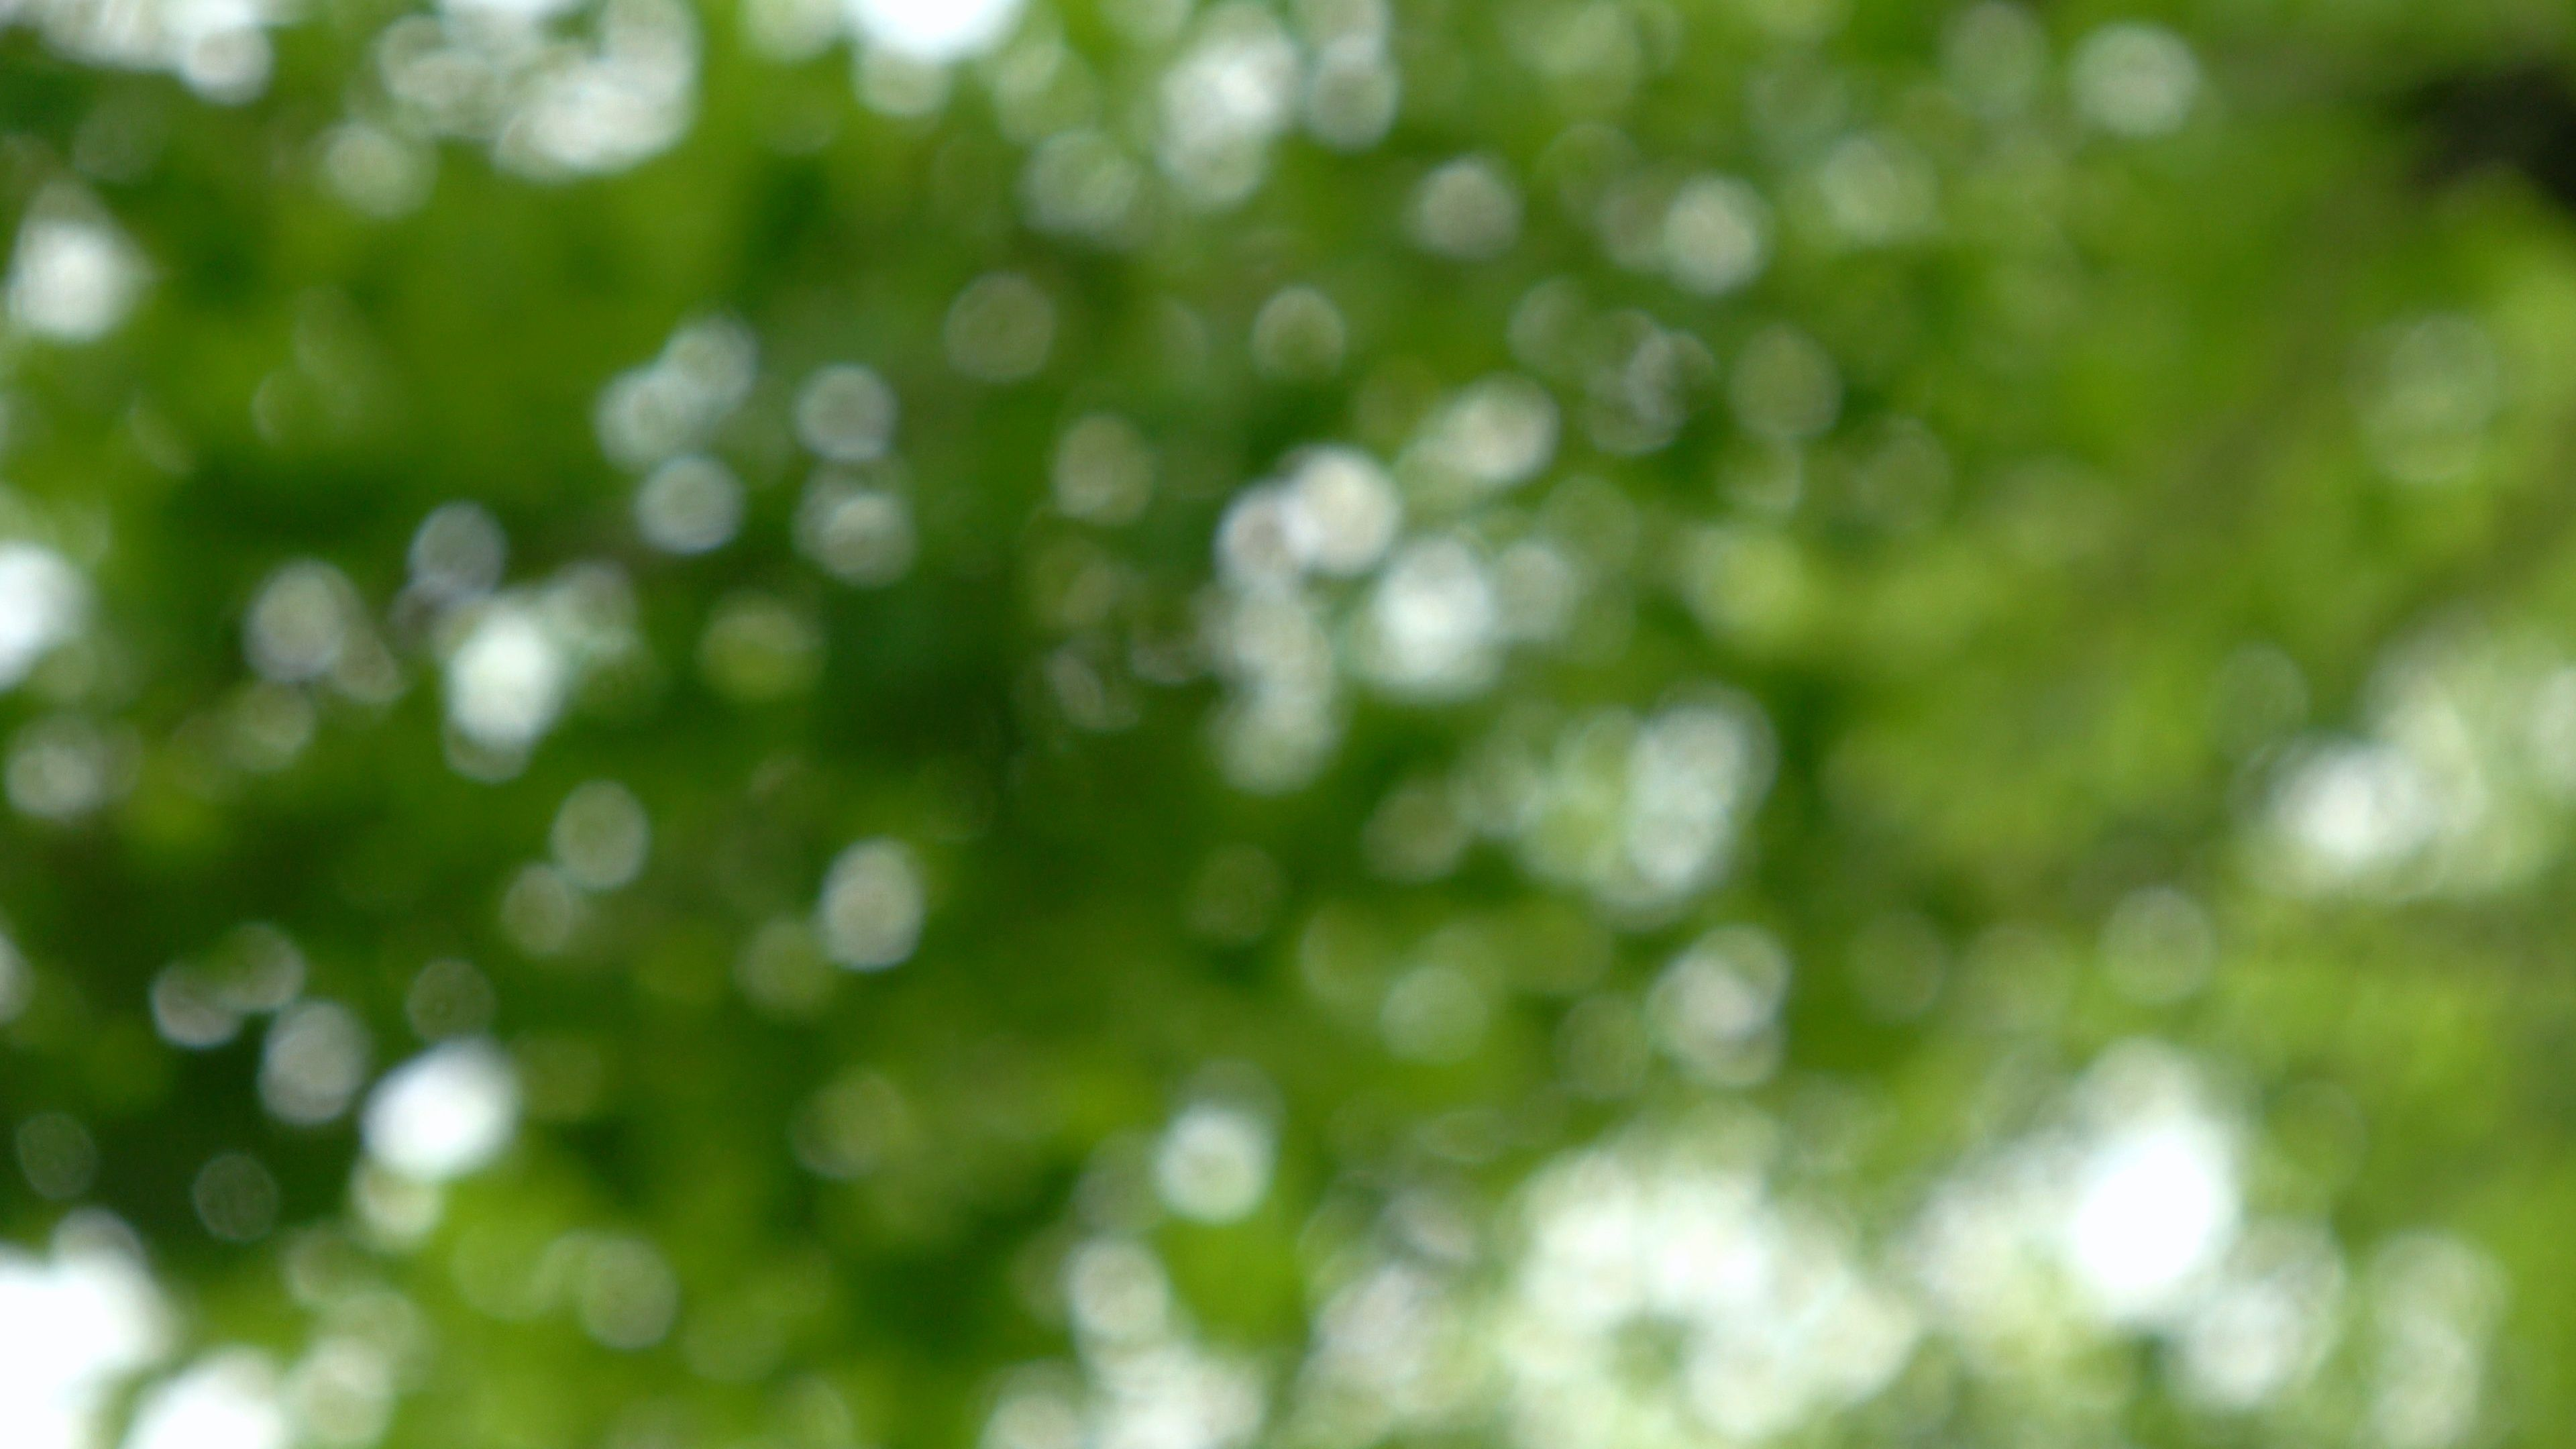 Abstract Nature Background Bokeh Footage Of Glowing Green Leaves In Sunlight Stock Footage Bokeh Footage Background Nature Backgrounds Abstract Nature Bokeh